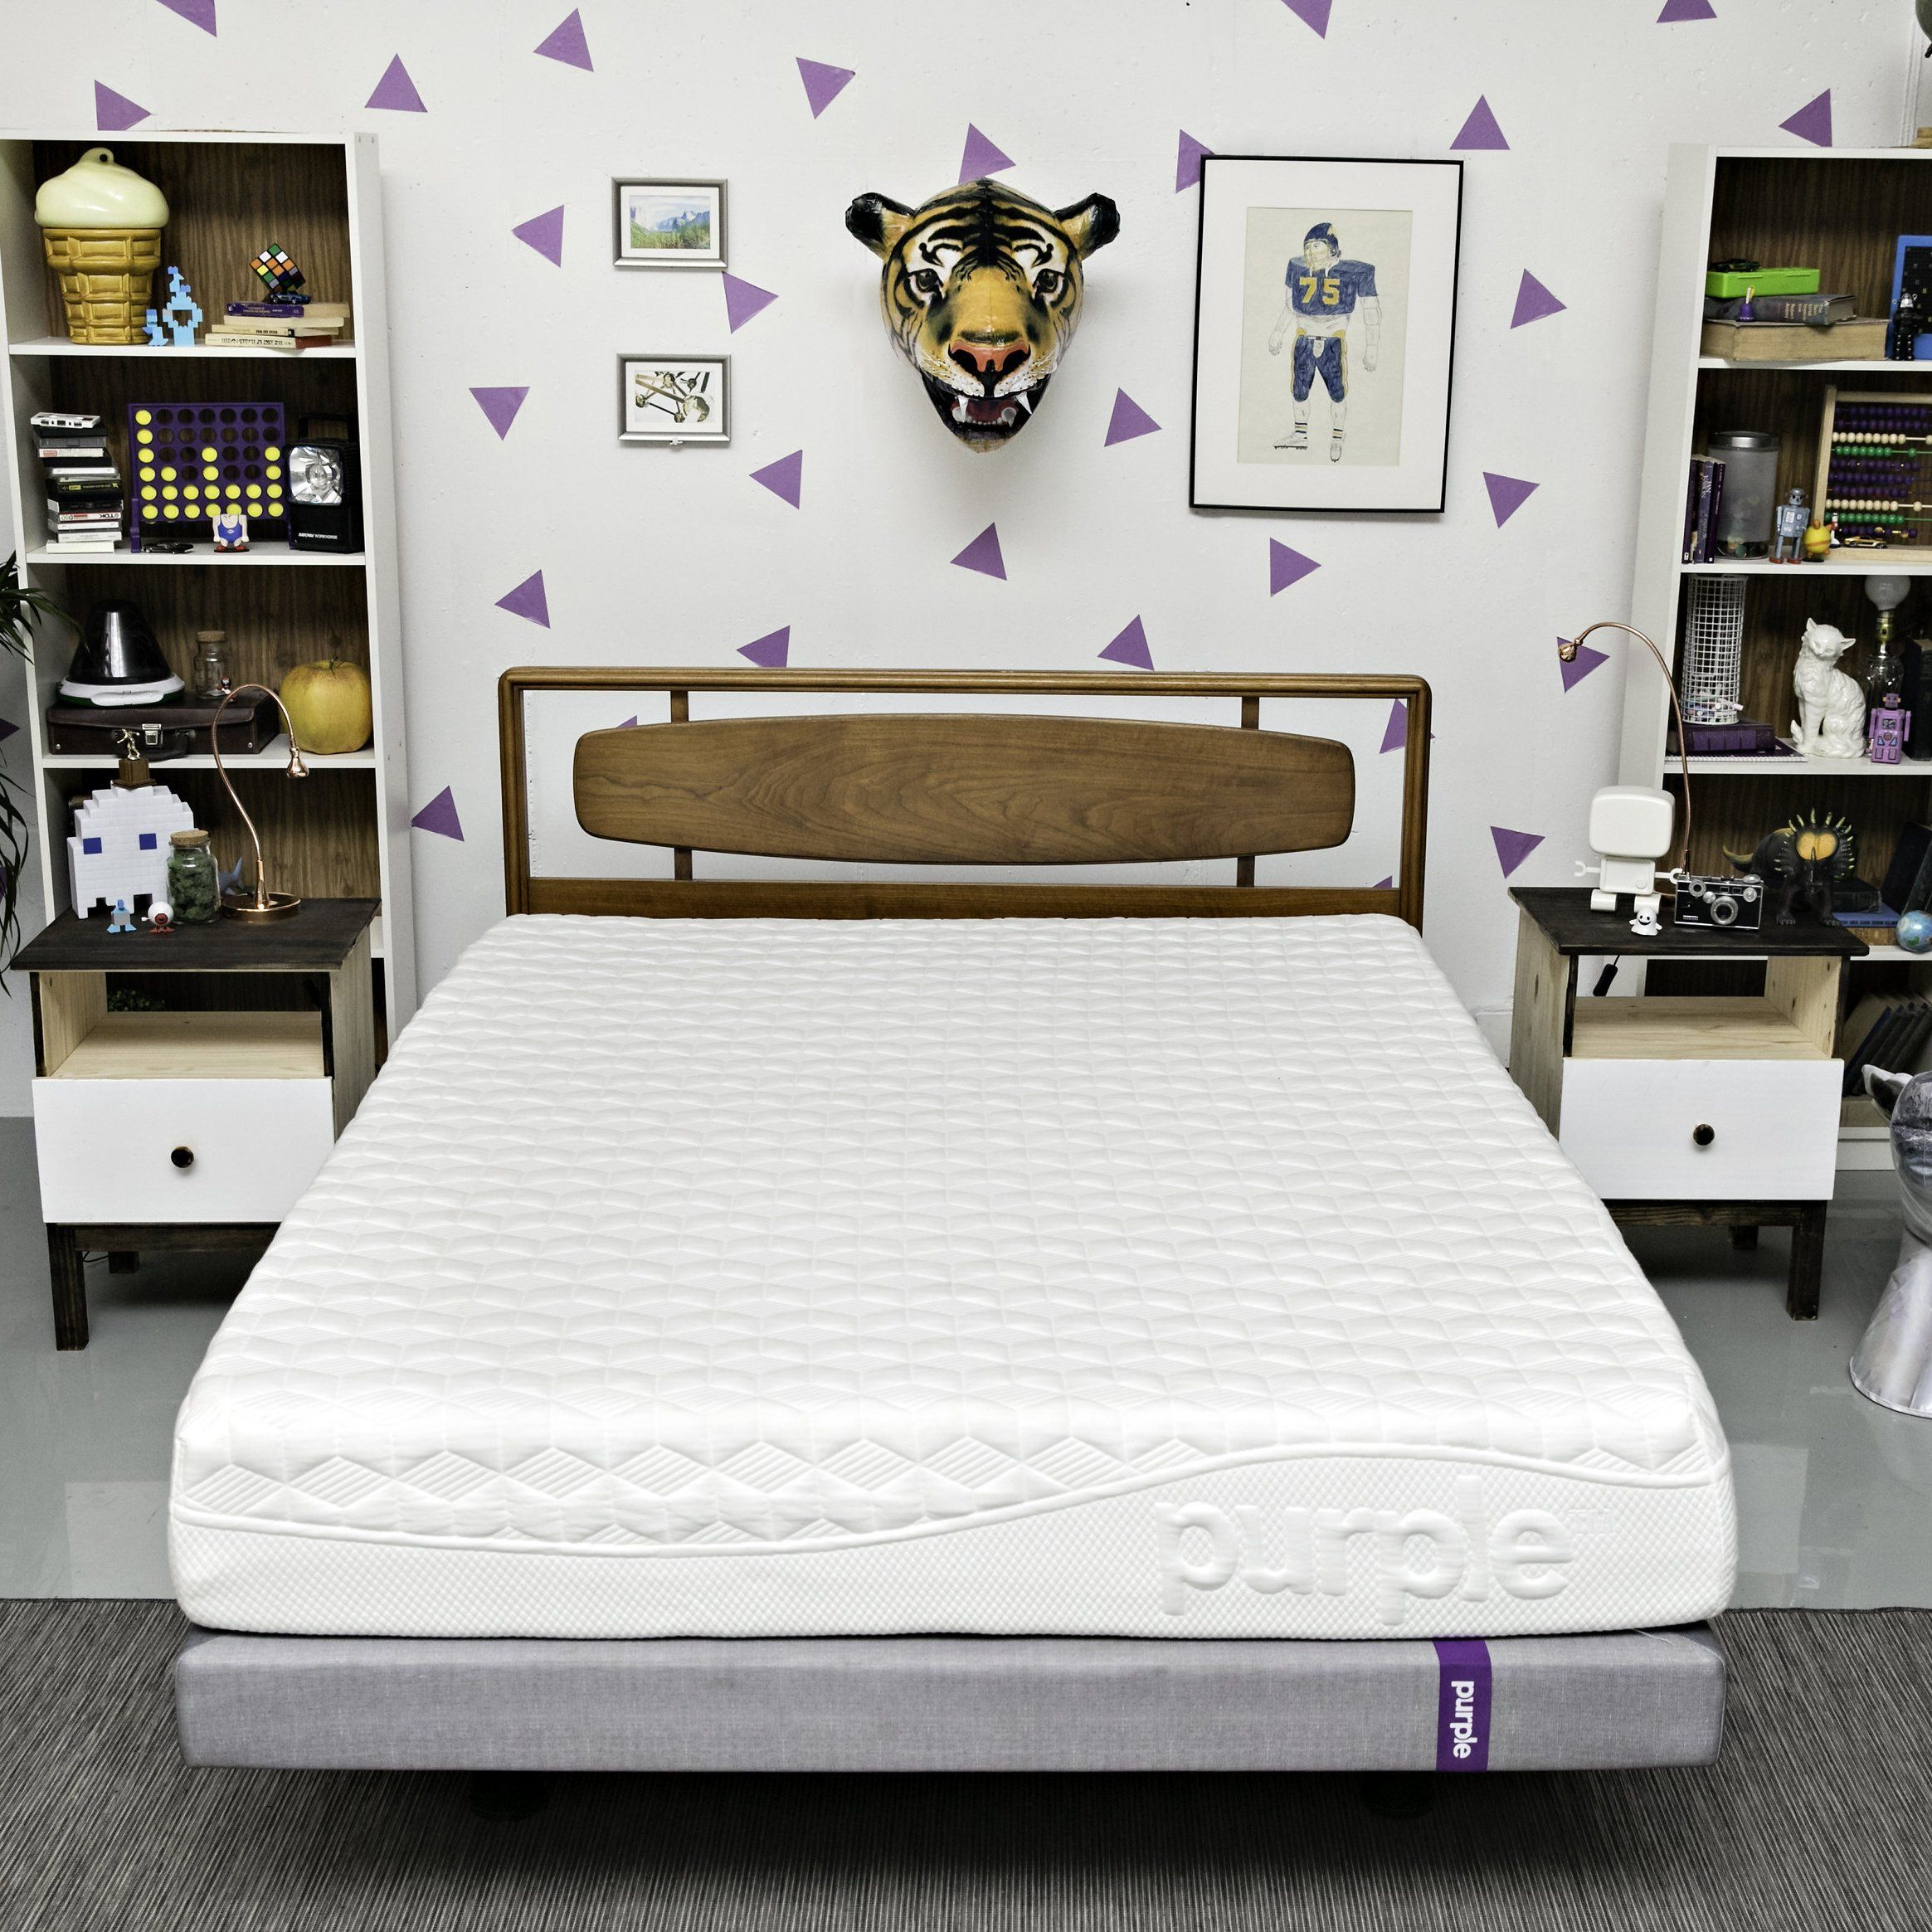 (OOP) The Original Purple Mattress Purple mattress